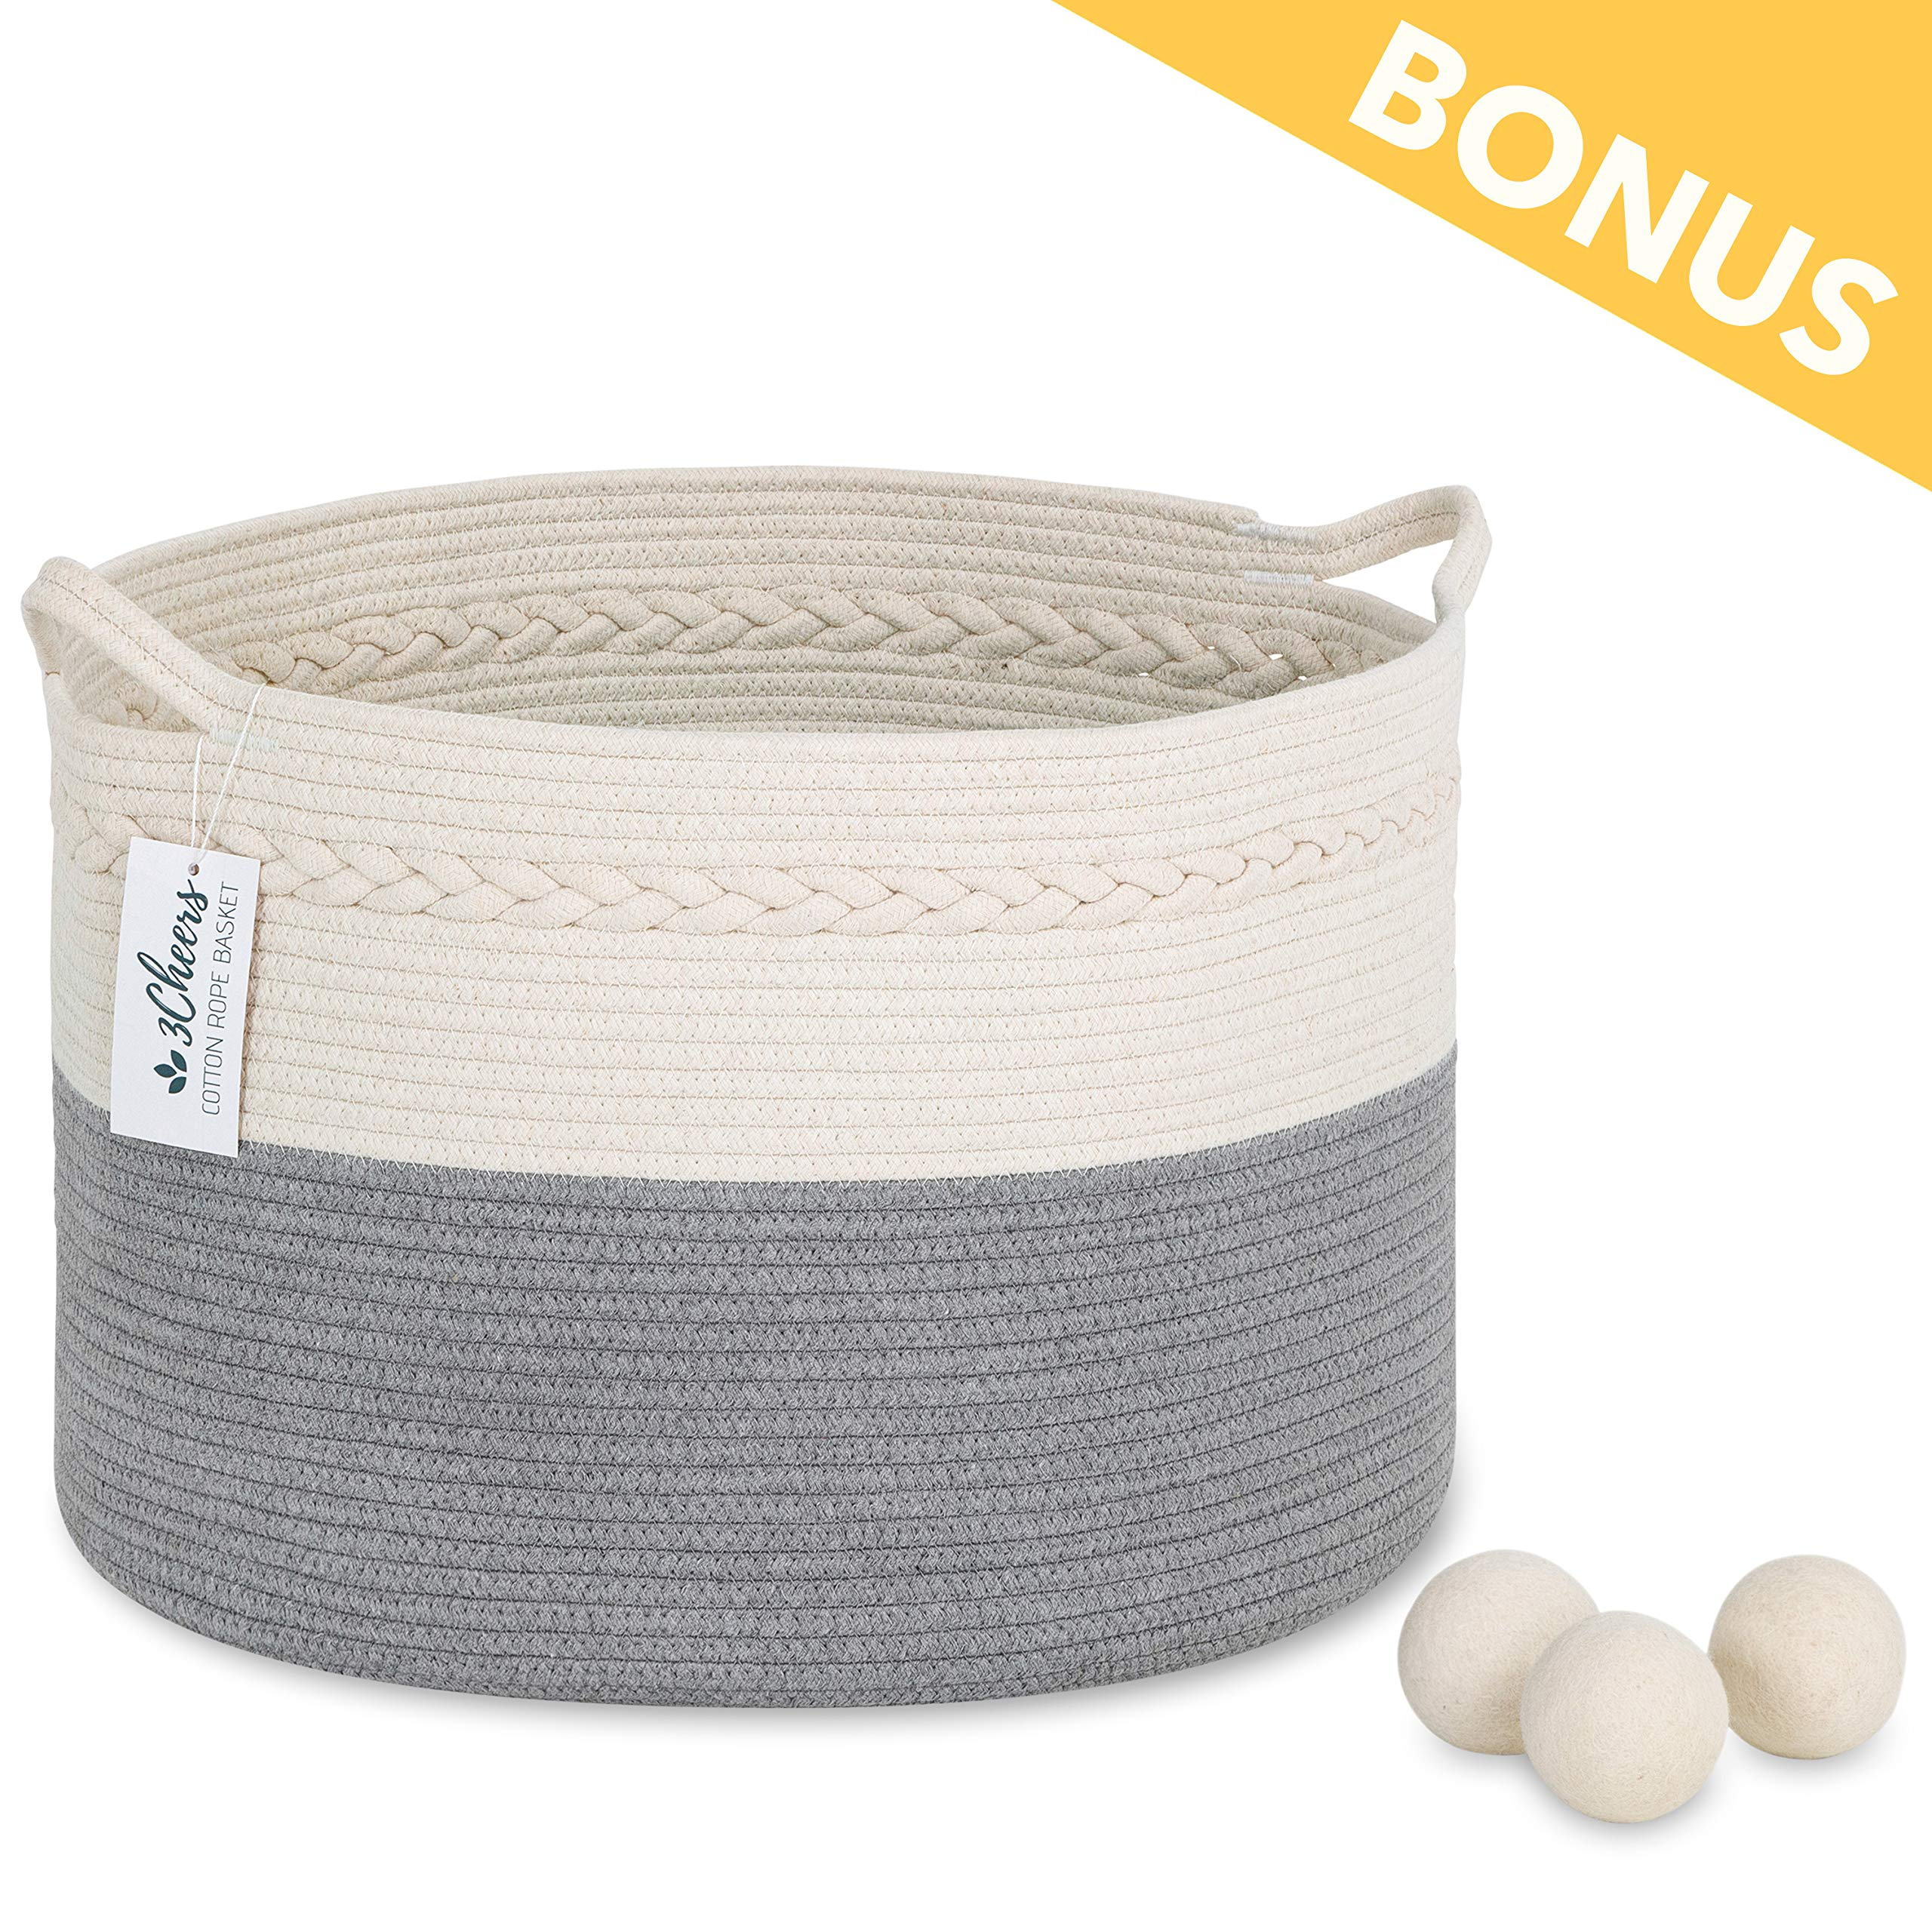 3Cheers Cotton Rope Storage Basket XXL 21'' X 13''| Extra Large Woven Storage Baby Nursery Laundry Basket with Handle | Blanket Basket for Living Room | Large Wicker Basket for Kids Toy | Laundry Hamper by 3Cheers